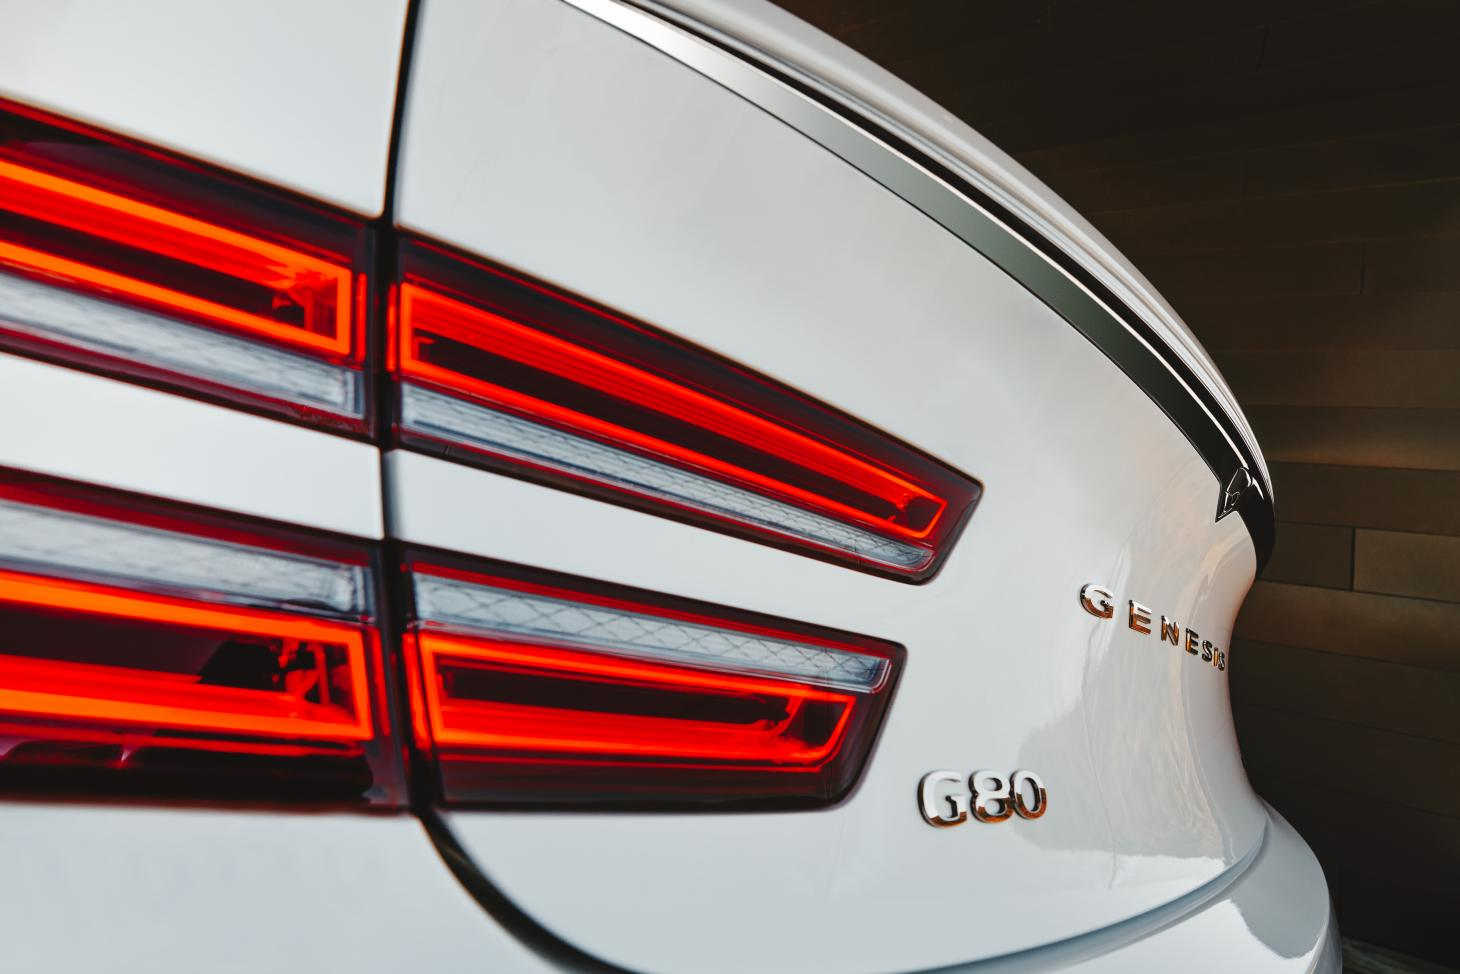 Genesis G80 detail view of the exterior car